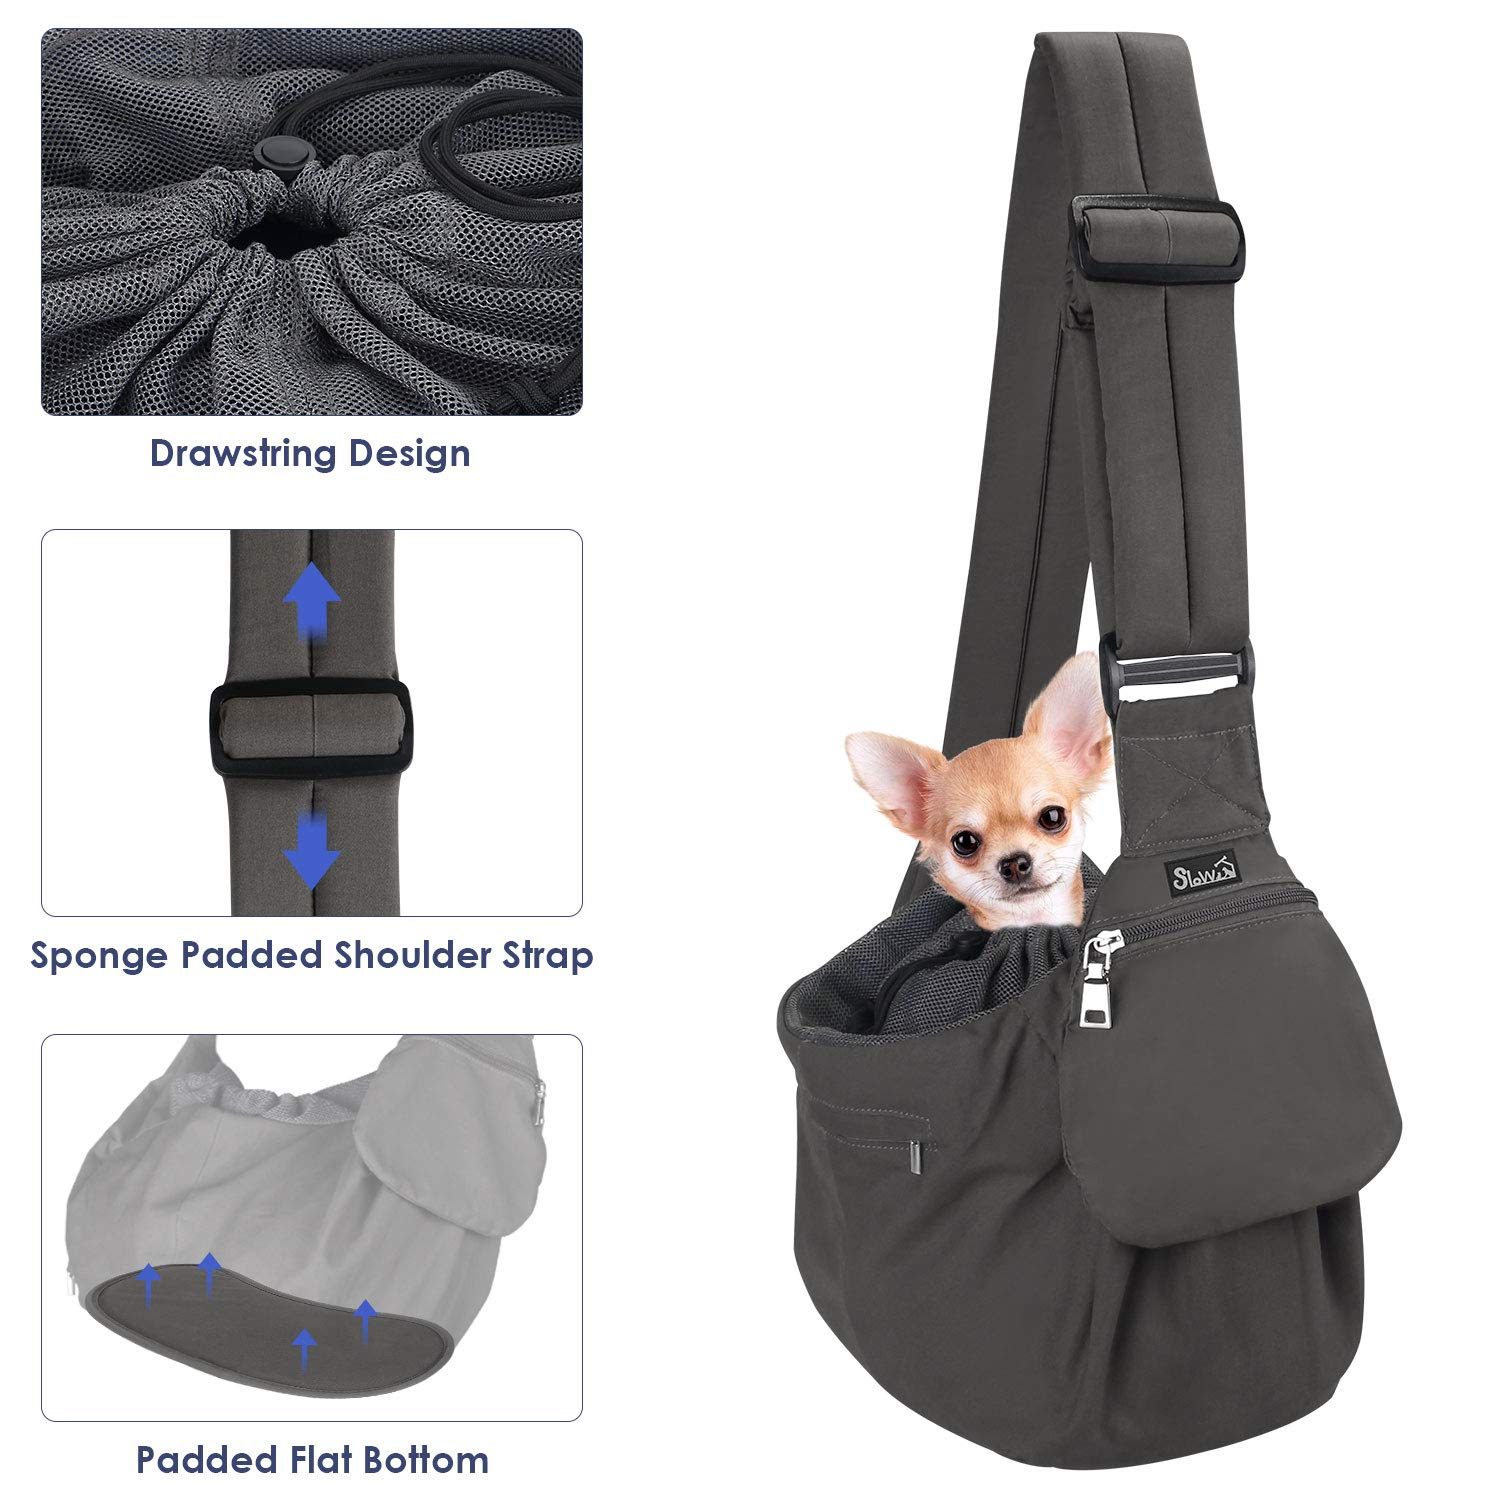 SlowTon Pet Sling Carrier, Dog Papoose Hand Free Puppy Cat Carry Bag with Bottom Supported Adjustable Padded Shoulder Strap and Bag Opening Front Zipper Pocket Safety Belt (Small, Grey)